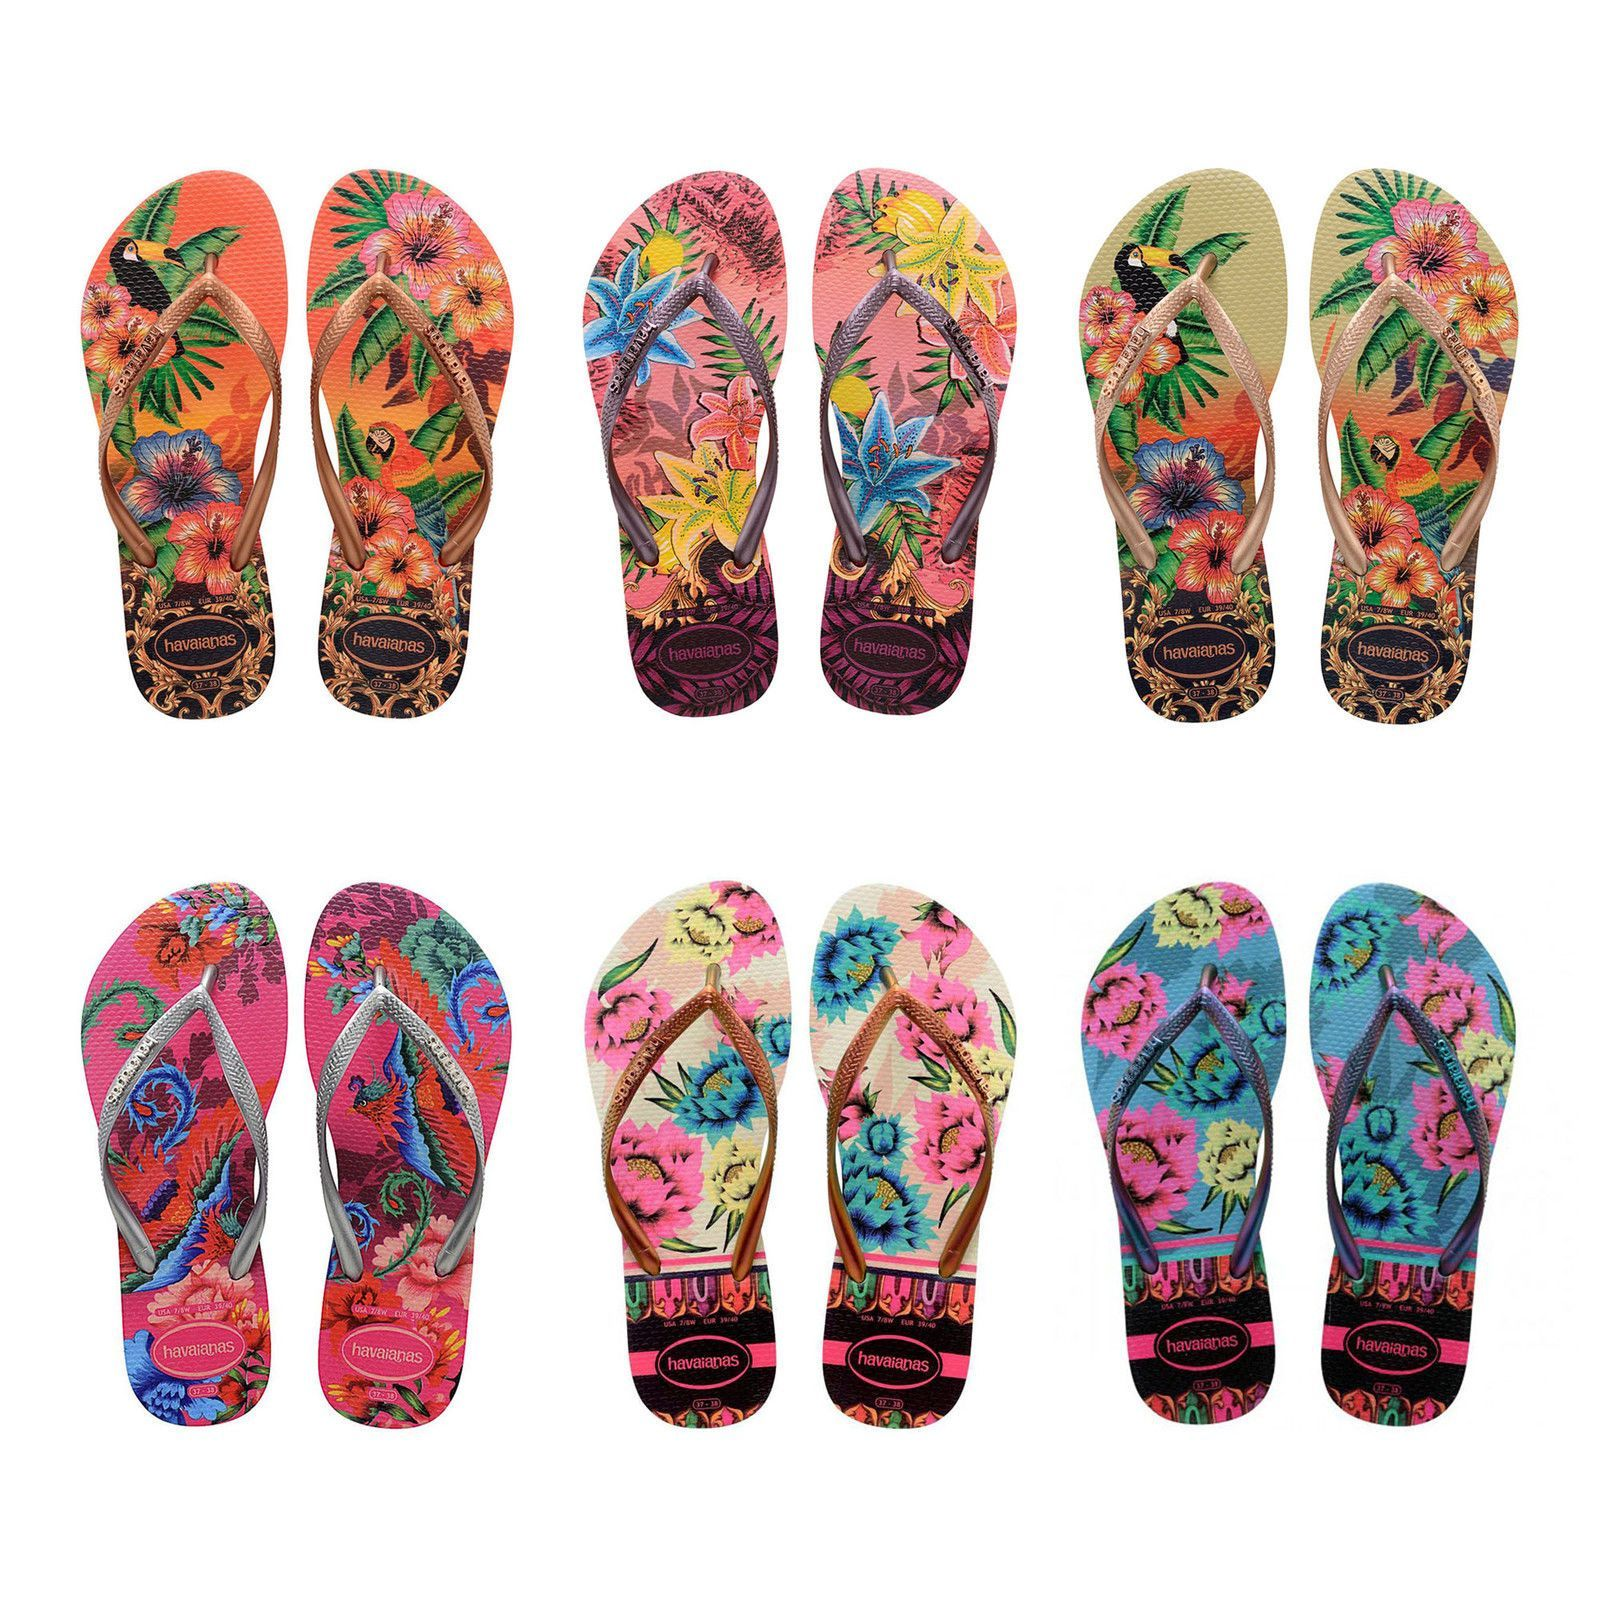 eb033b51be5c79 Original Havaianas Flip Flops Slim Tropical Beach Sandals Women All Sizes